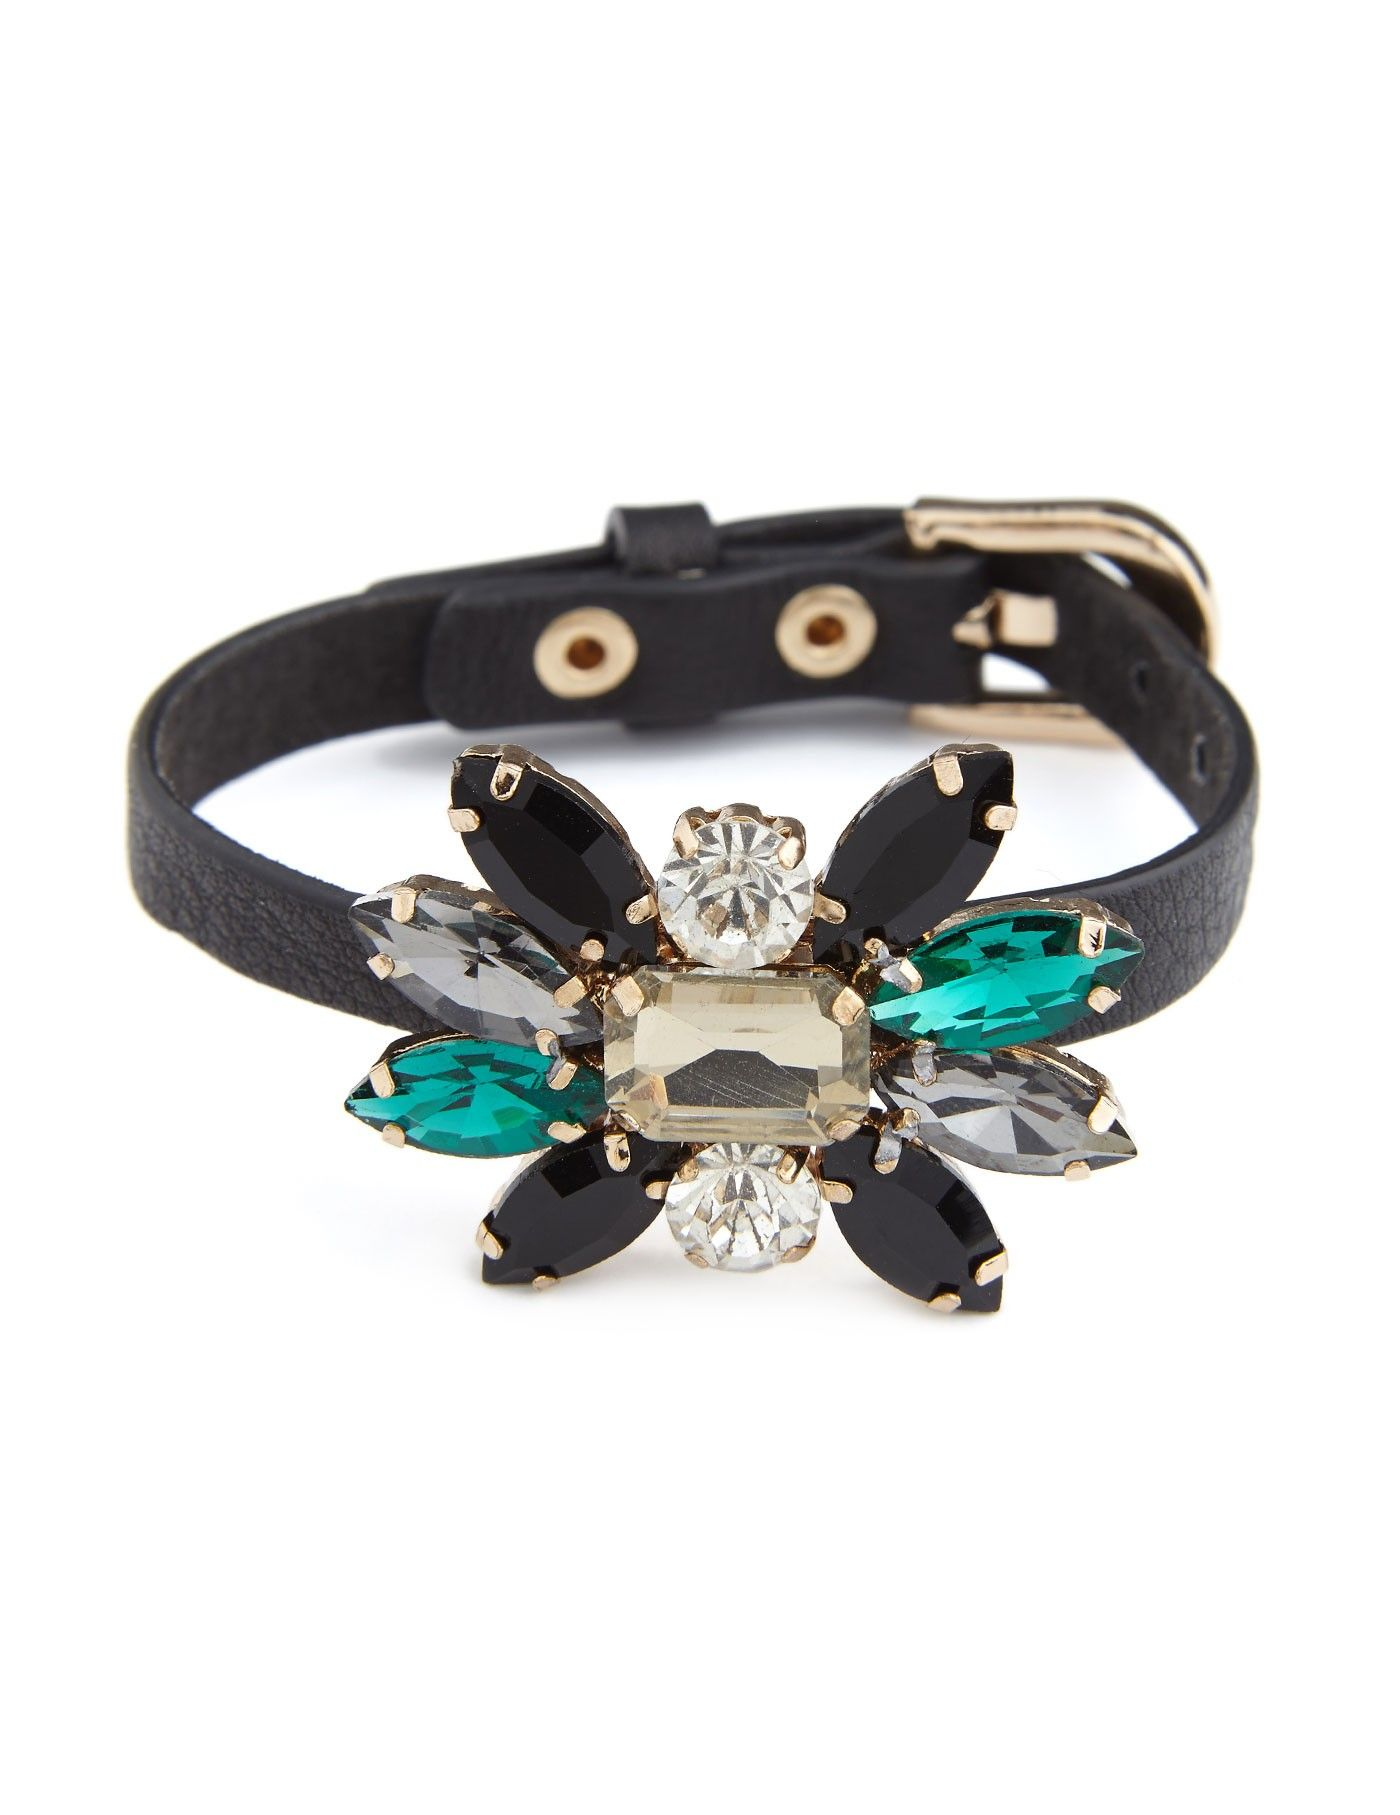 Juvenile Bracelet A Luxurious Leather With Imitation Stone Flowers Great Piece To